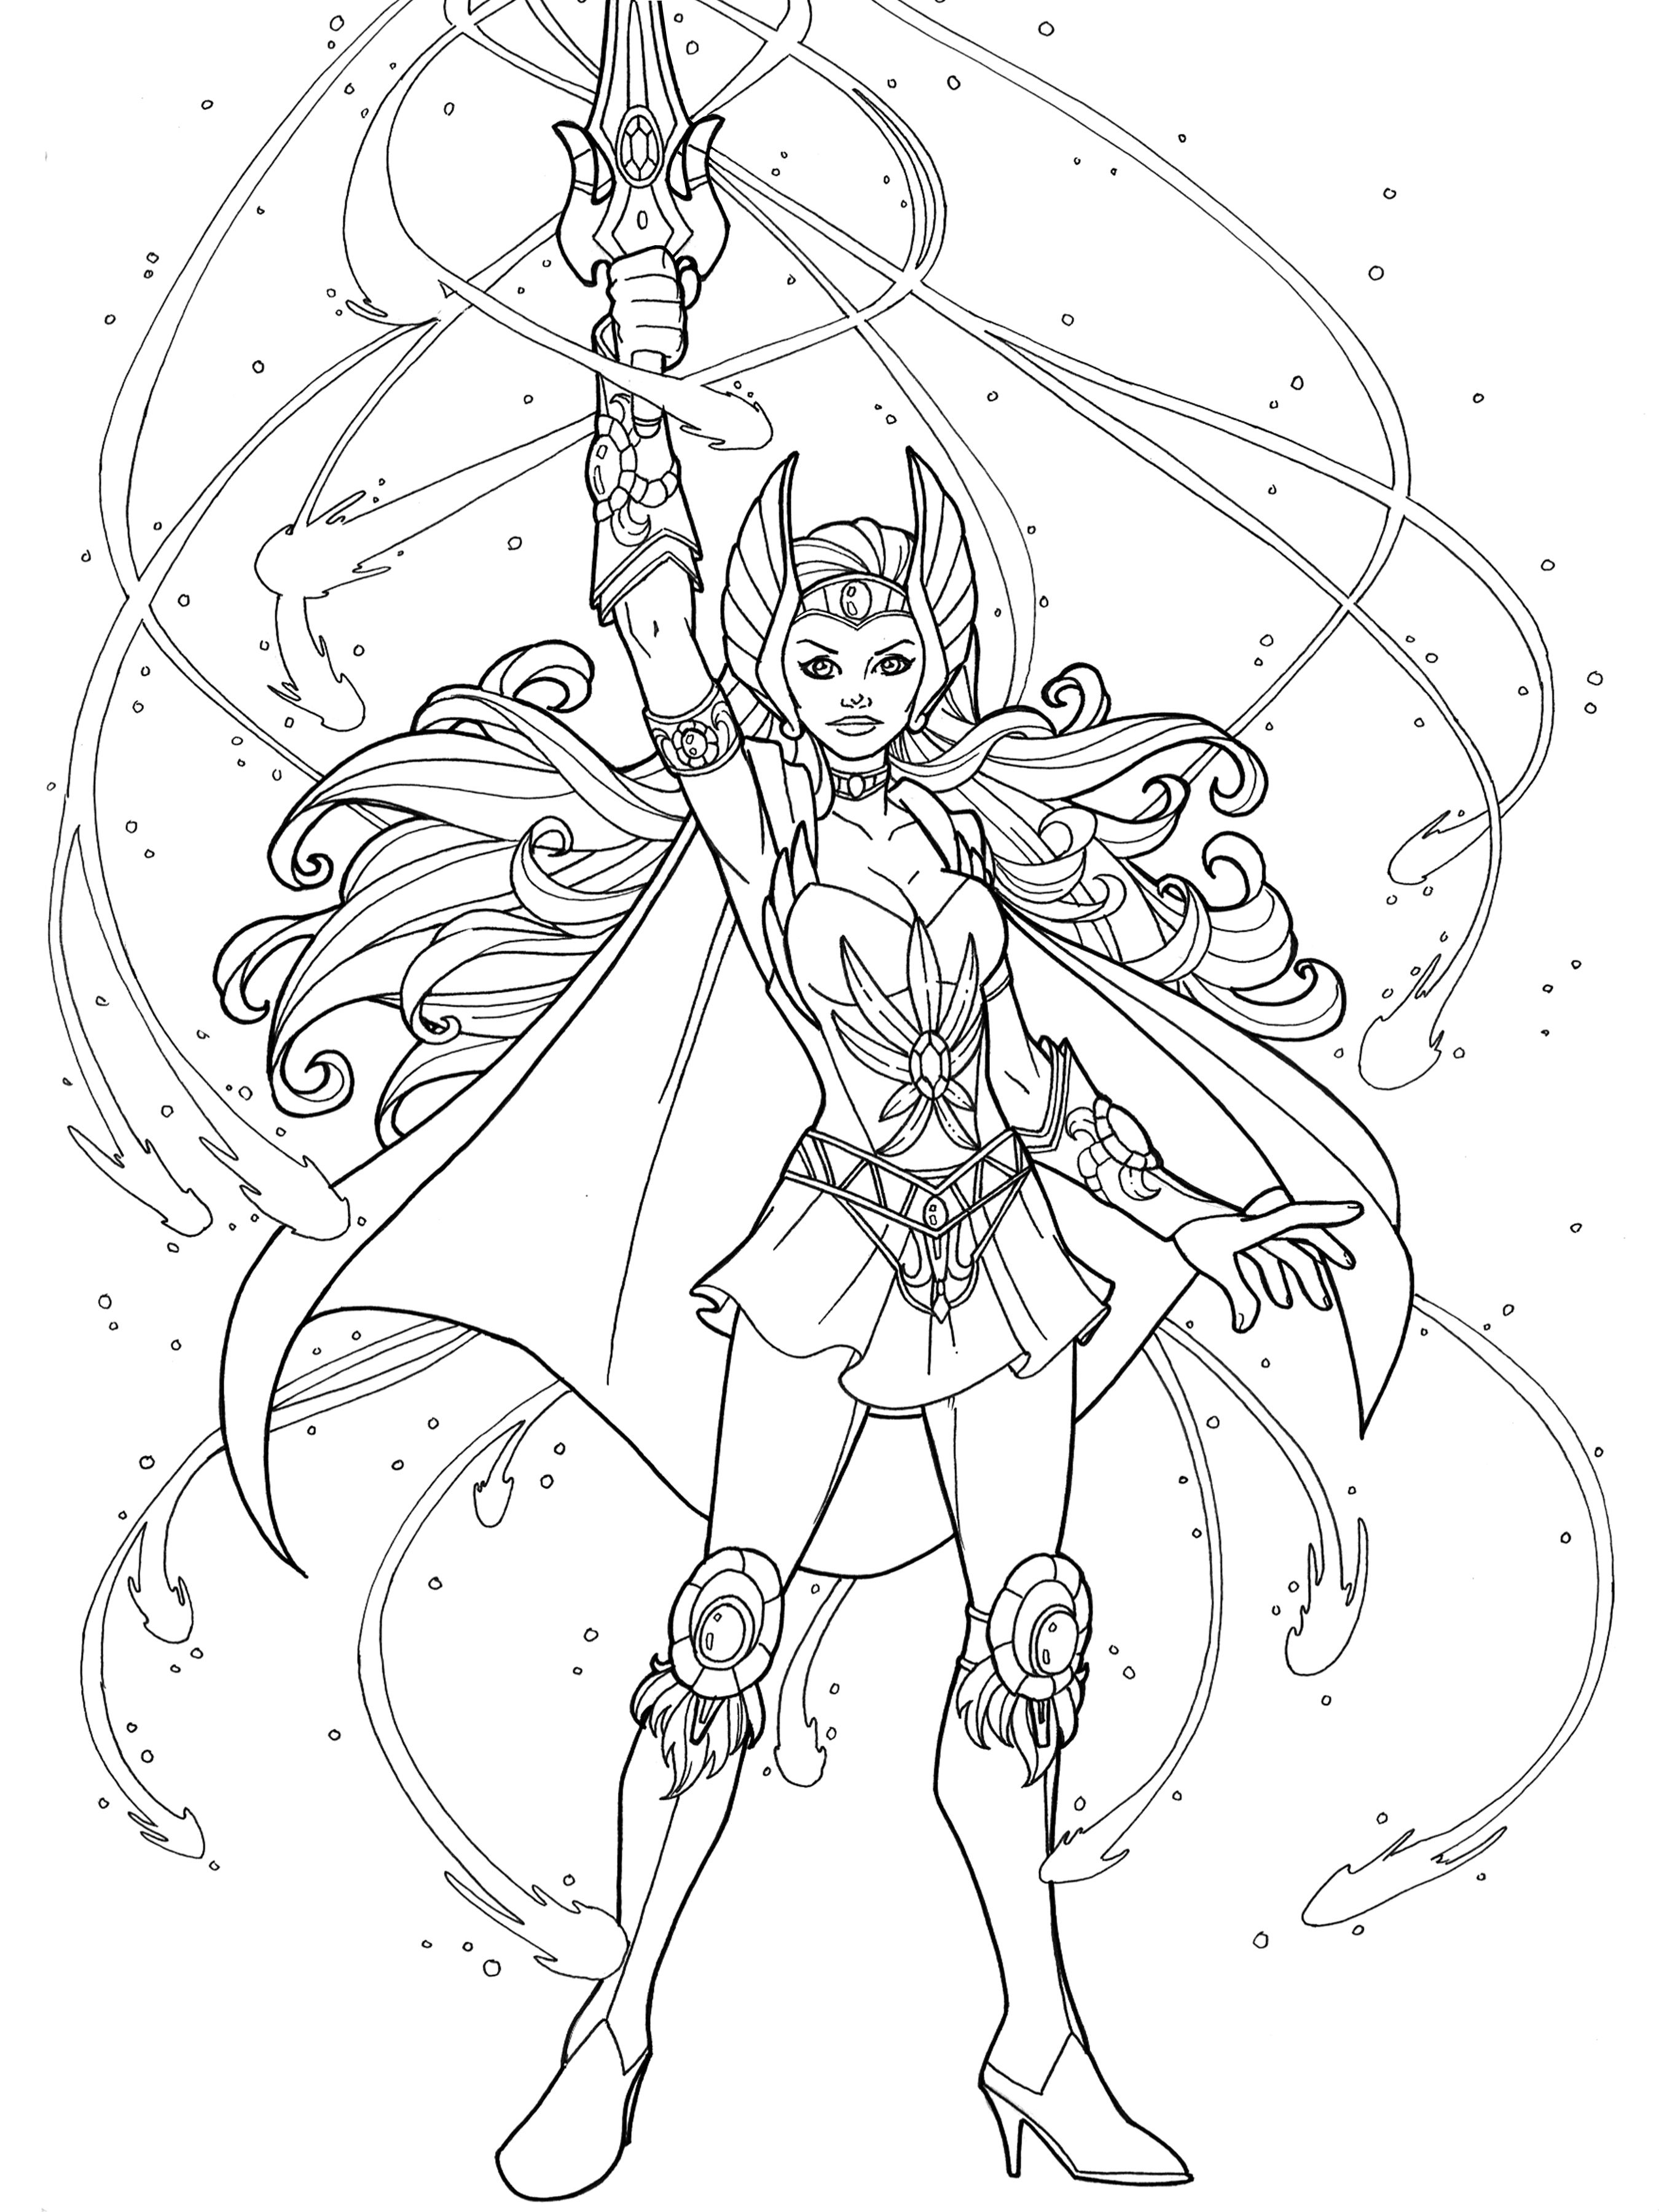 She Ra To Save The Day